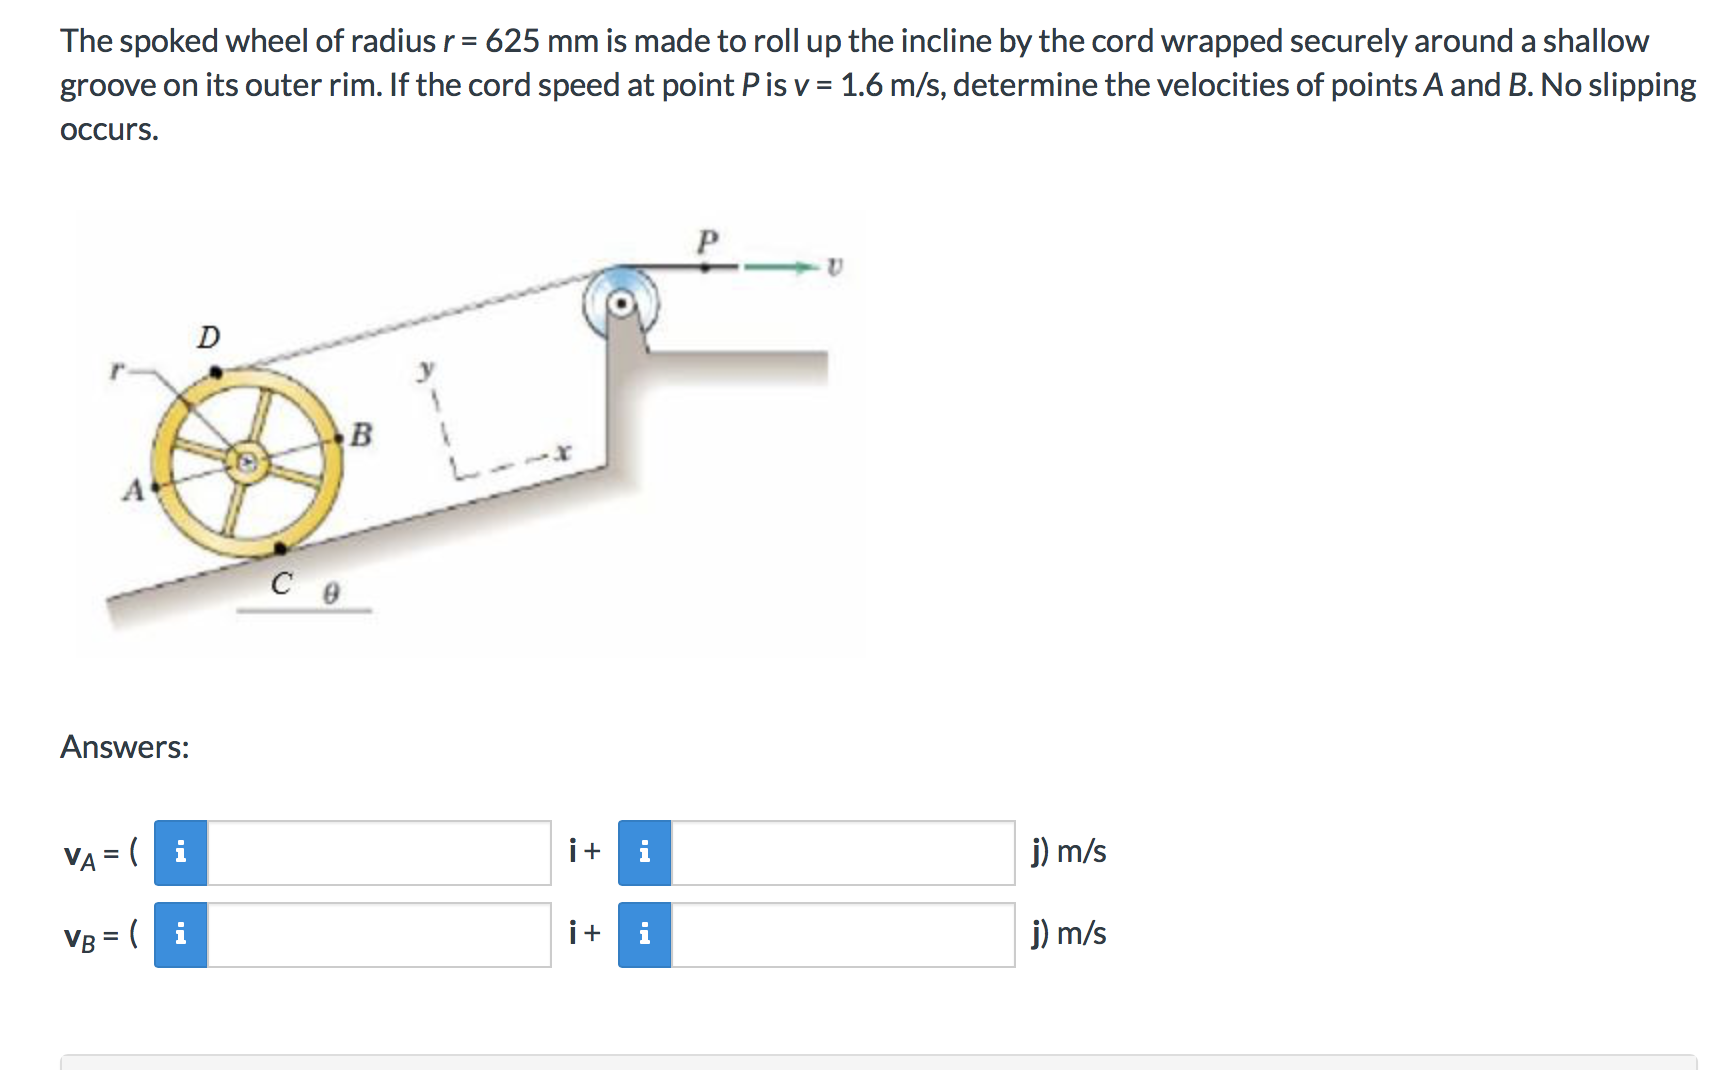 The spoked wheel of radius r 625 mm is made to roll up the incline by the cord wrapped securely around a shallow groove on its outer rim. If the cord speed at point P is v 1.6 m/s, determine the velocities of points A and B. No slipping OCcurs D C e Answers: ii j) m/s VA = (i ii j) m/s VB (i